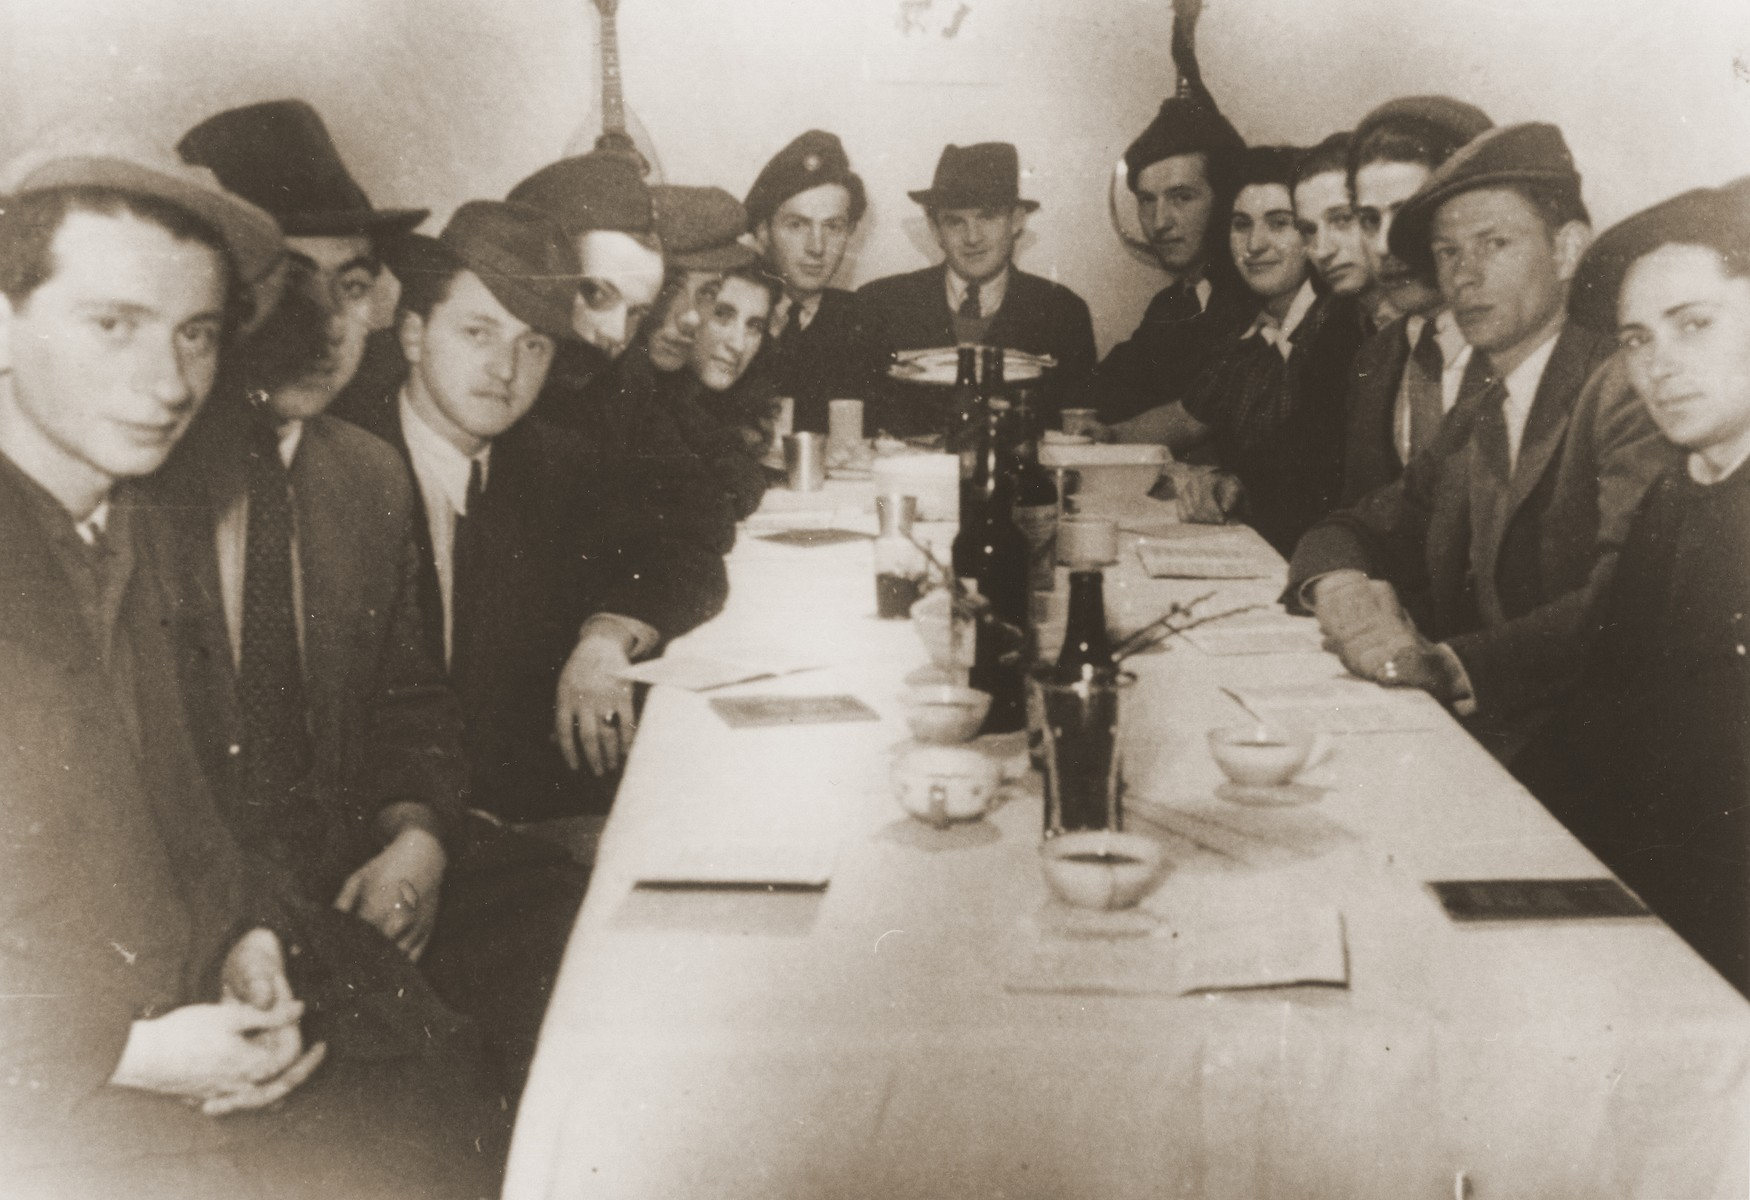 Members of the Kibbutz Haghibor hachshara hold a Passover seder in the Bergen-Belsen displaced persons camp.  Pictured in back at the head of the table is Laci (Leslie) Schwartz.